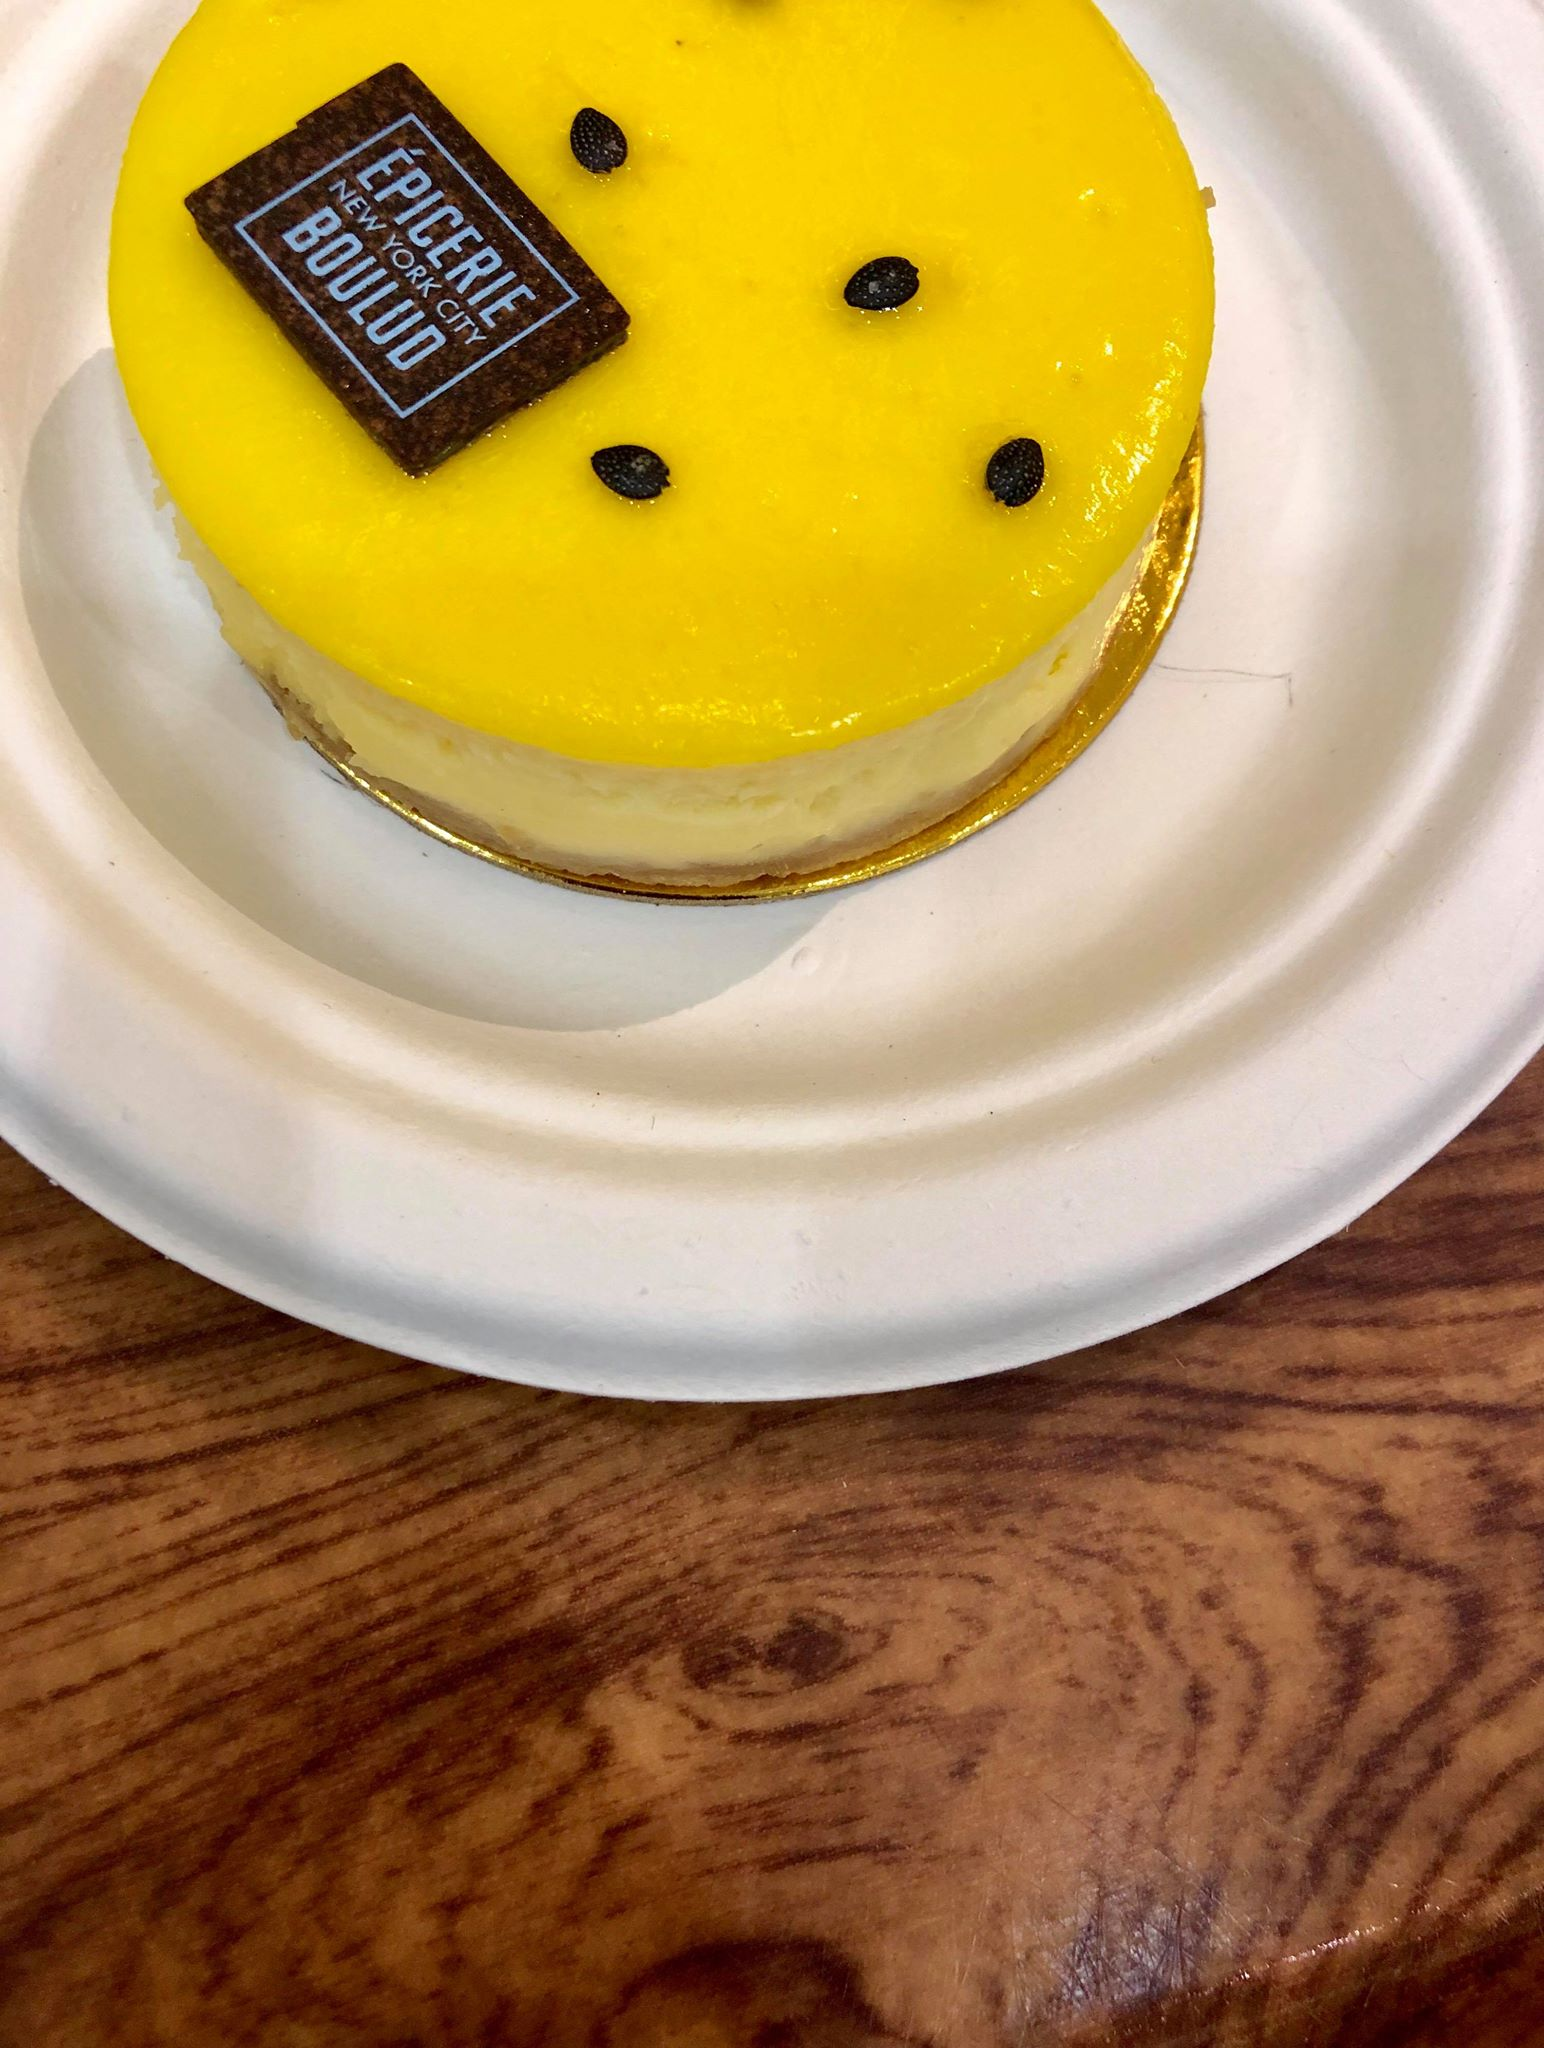 Epicerie Boulud - Shopping around Westfield at the World trade shopping center, stop in Epicerie Boulud and try the passion fruit cheesecake. The cheesecake was lovely and were there are lots of delicious dessert options to choose from.My order:- Passion fruit cheesecake